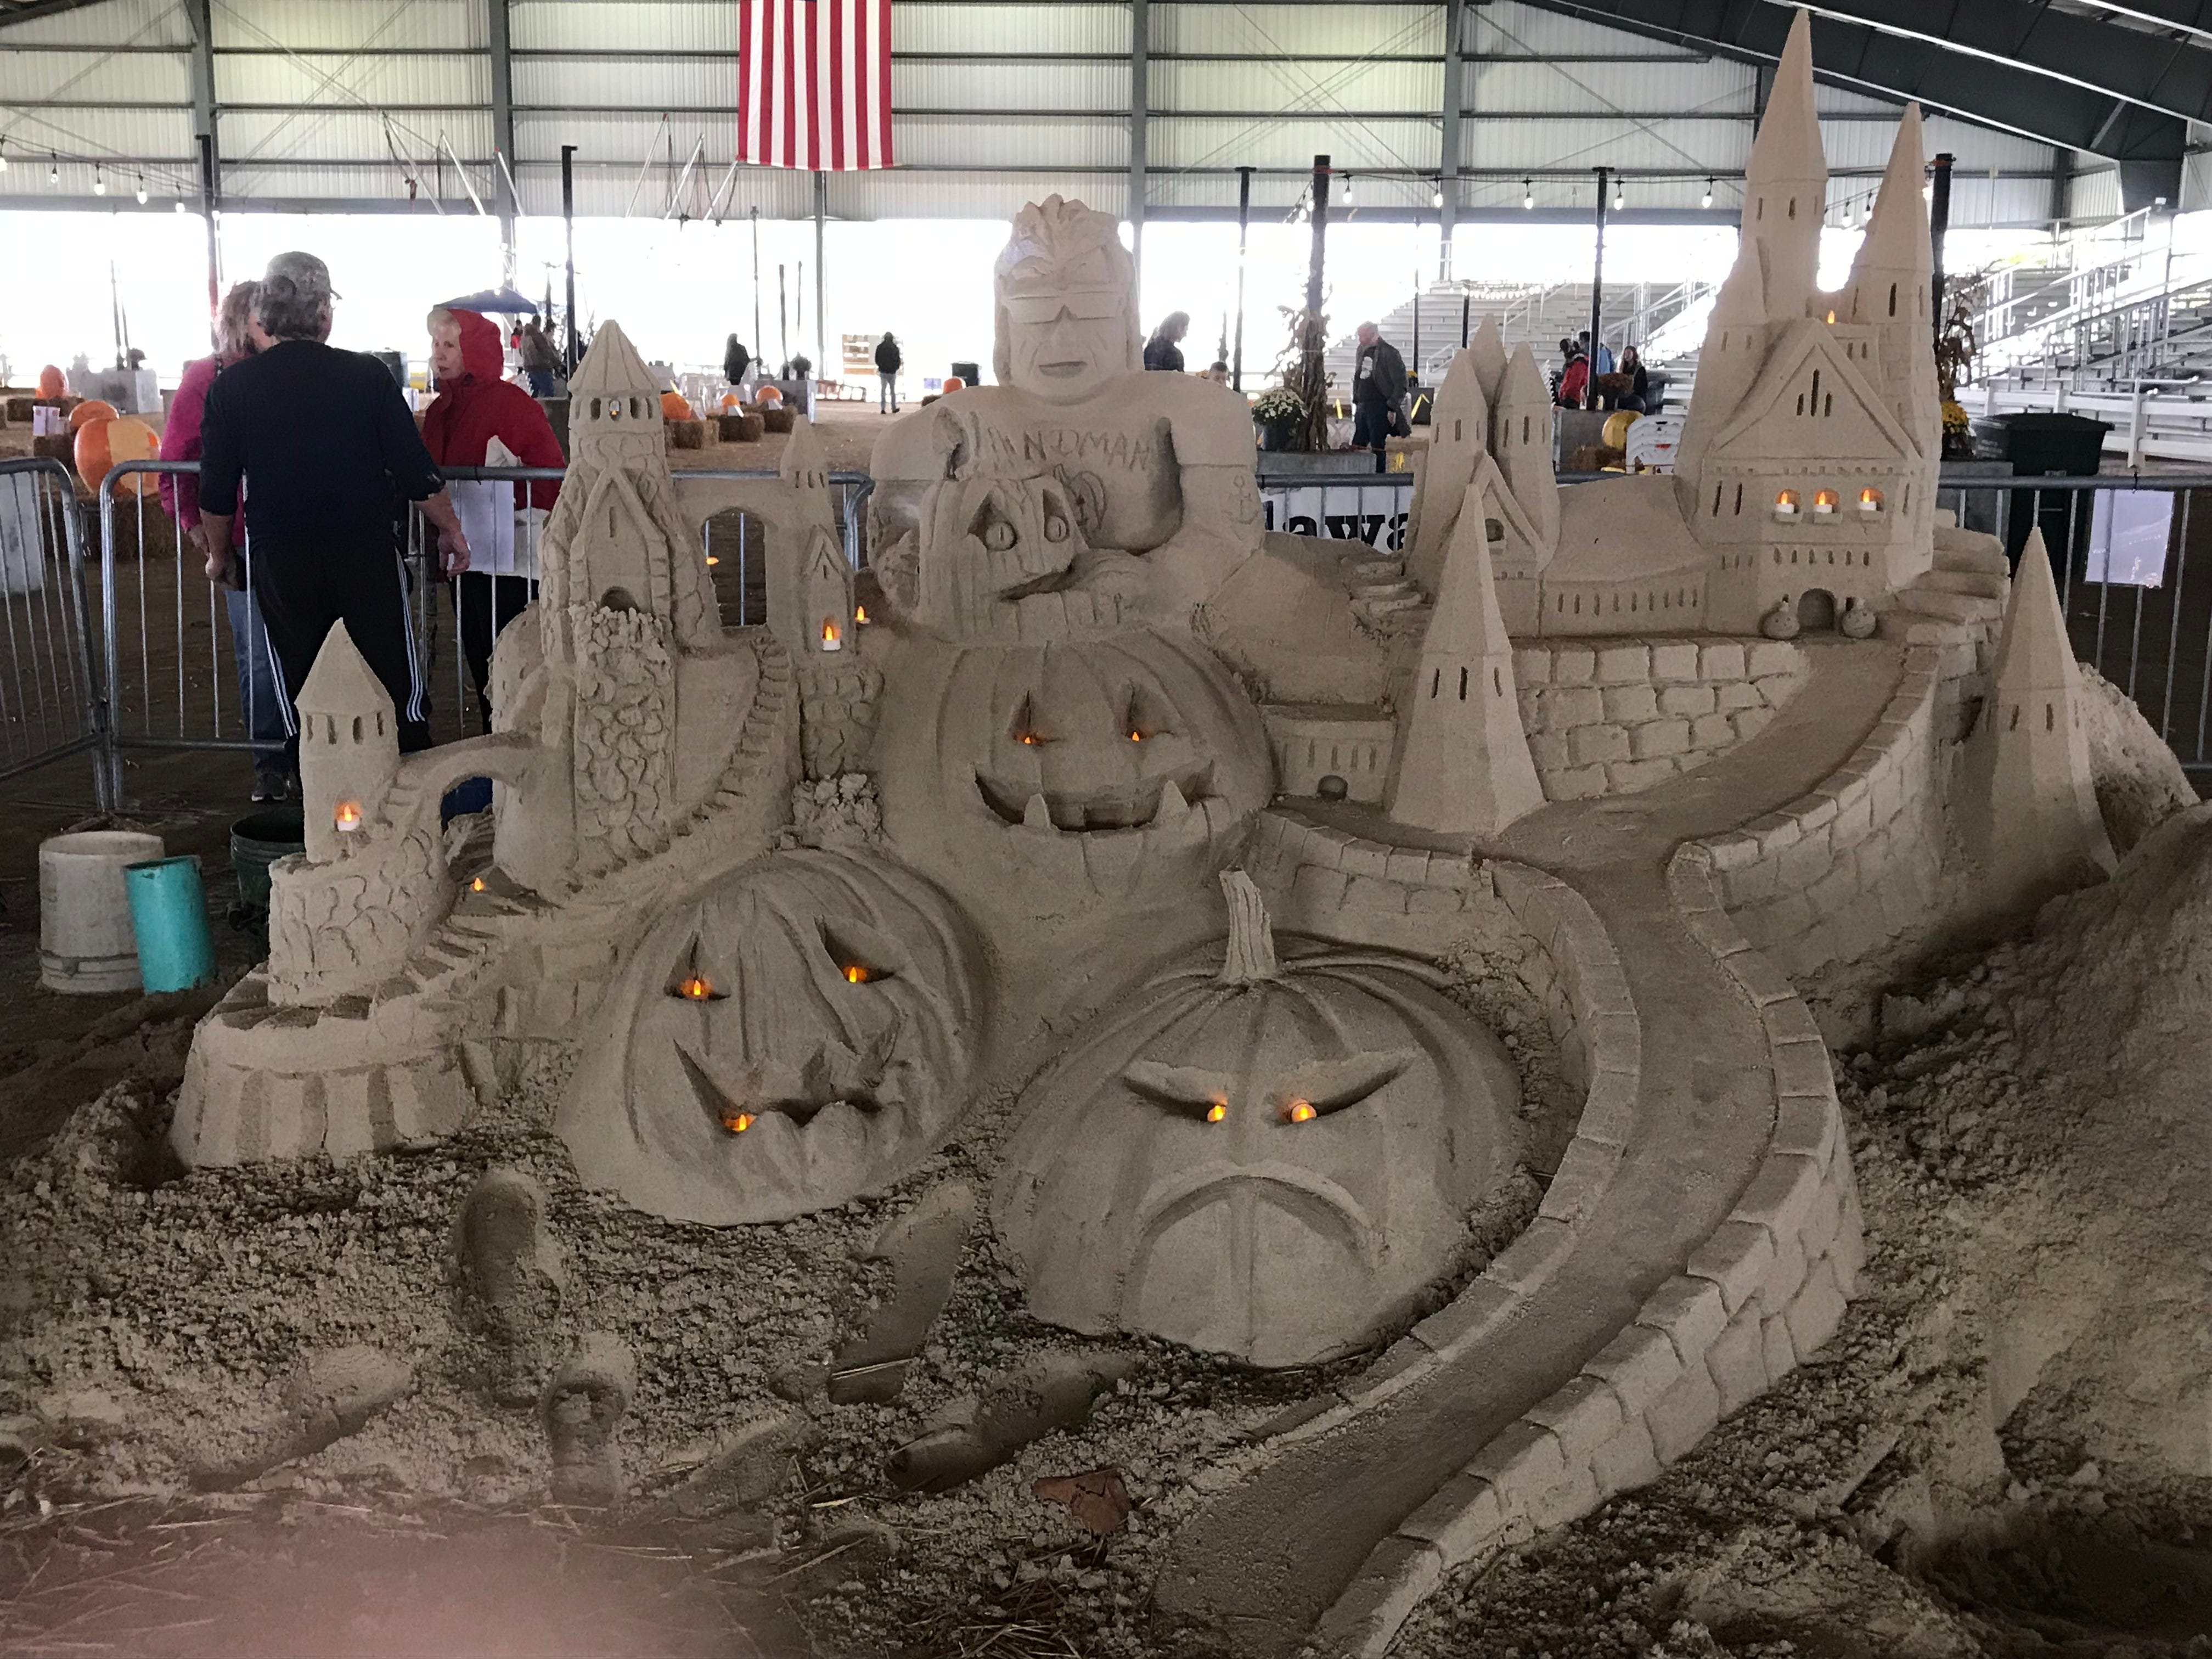 Andrew West, in the rear talking to guests, created a Halloween sand sculpture at the first Great Delaware Pumpkin Carve.